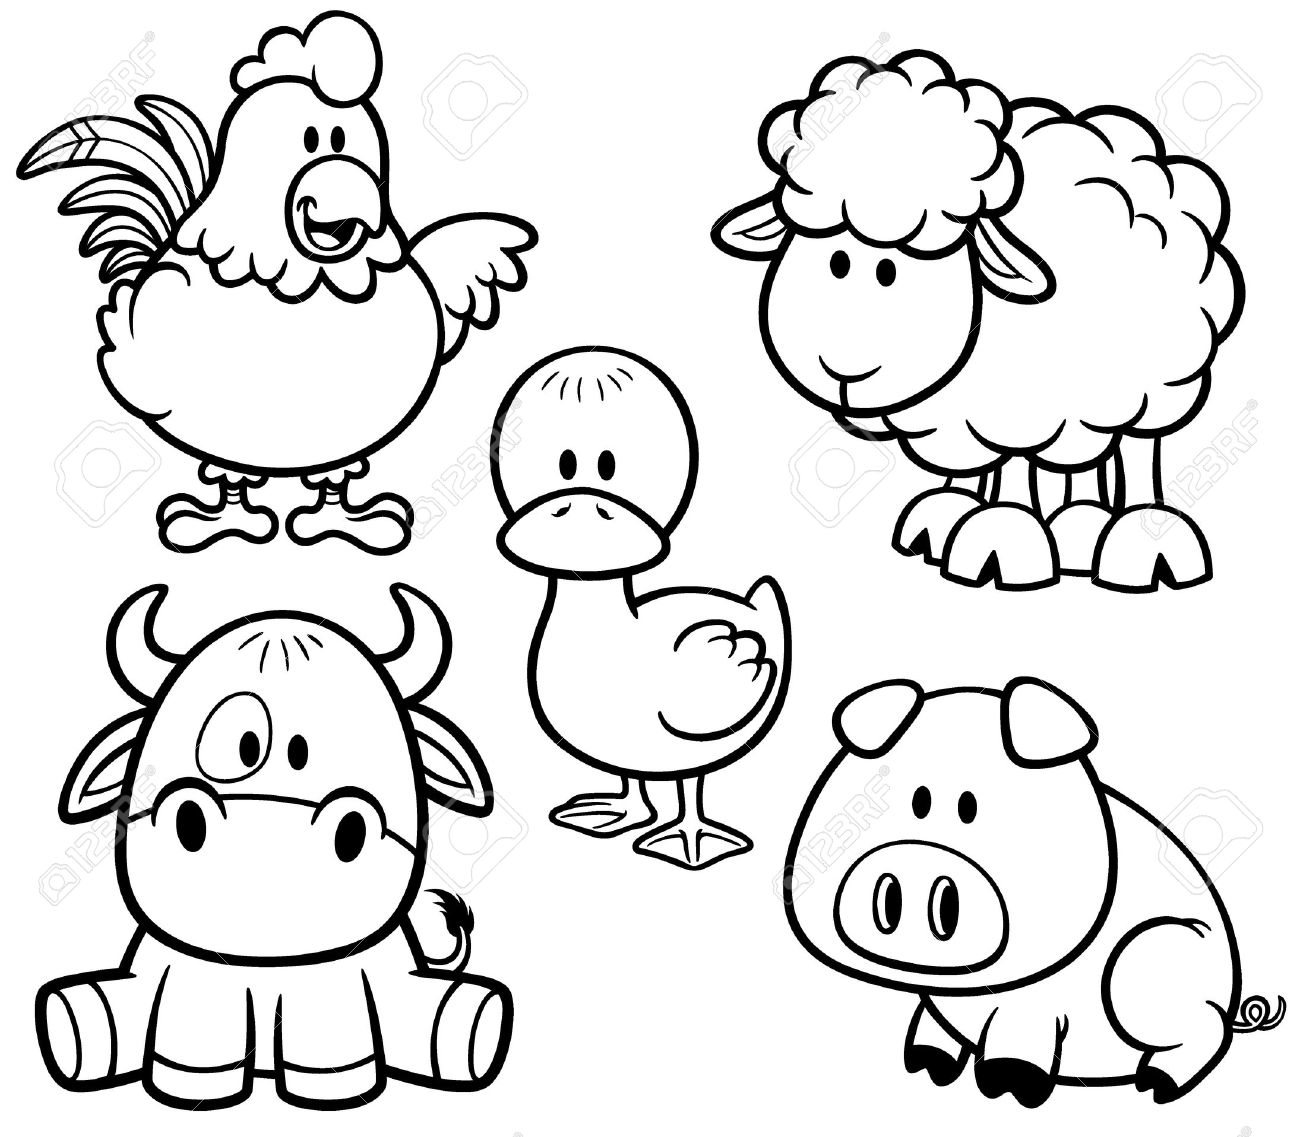 cute coloring pages animals cute christmas animal coloring pages coloring home pages animals cute coloring